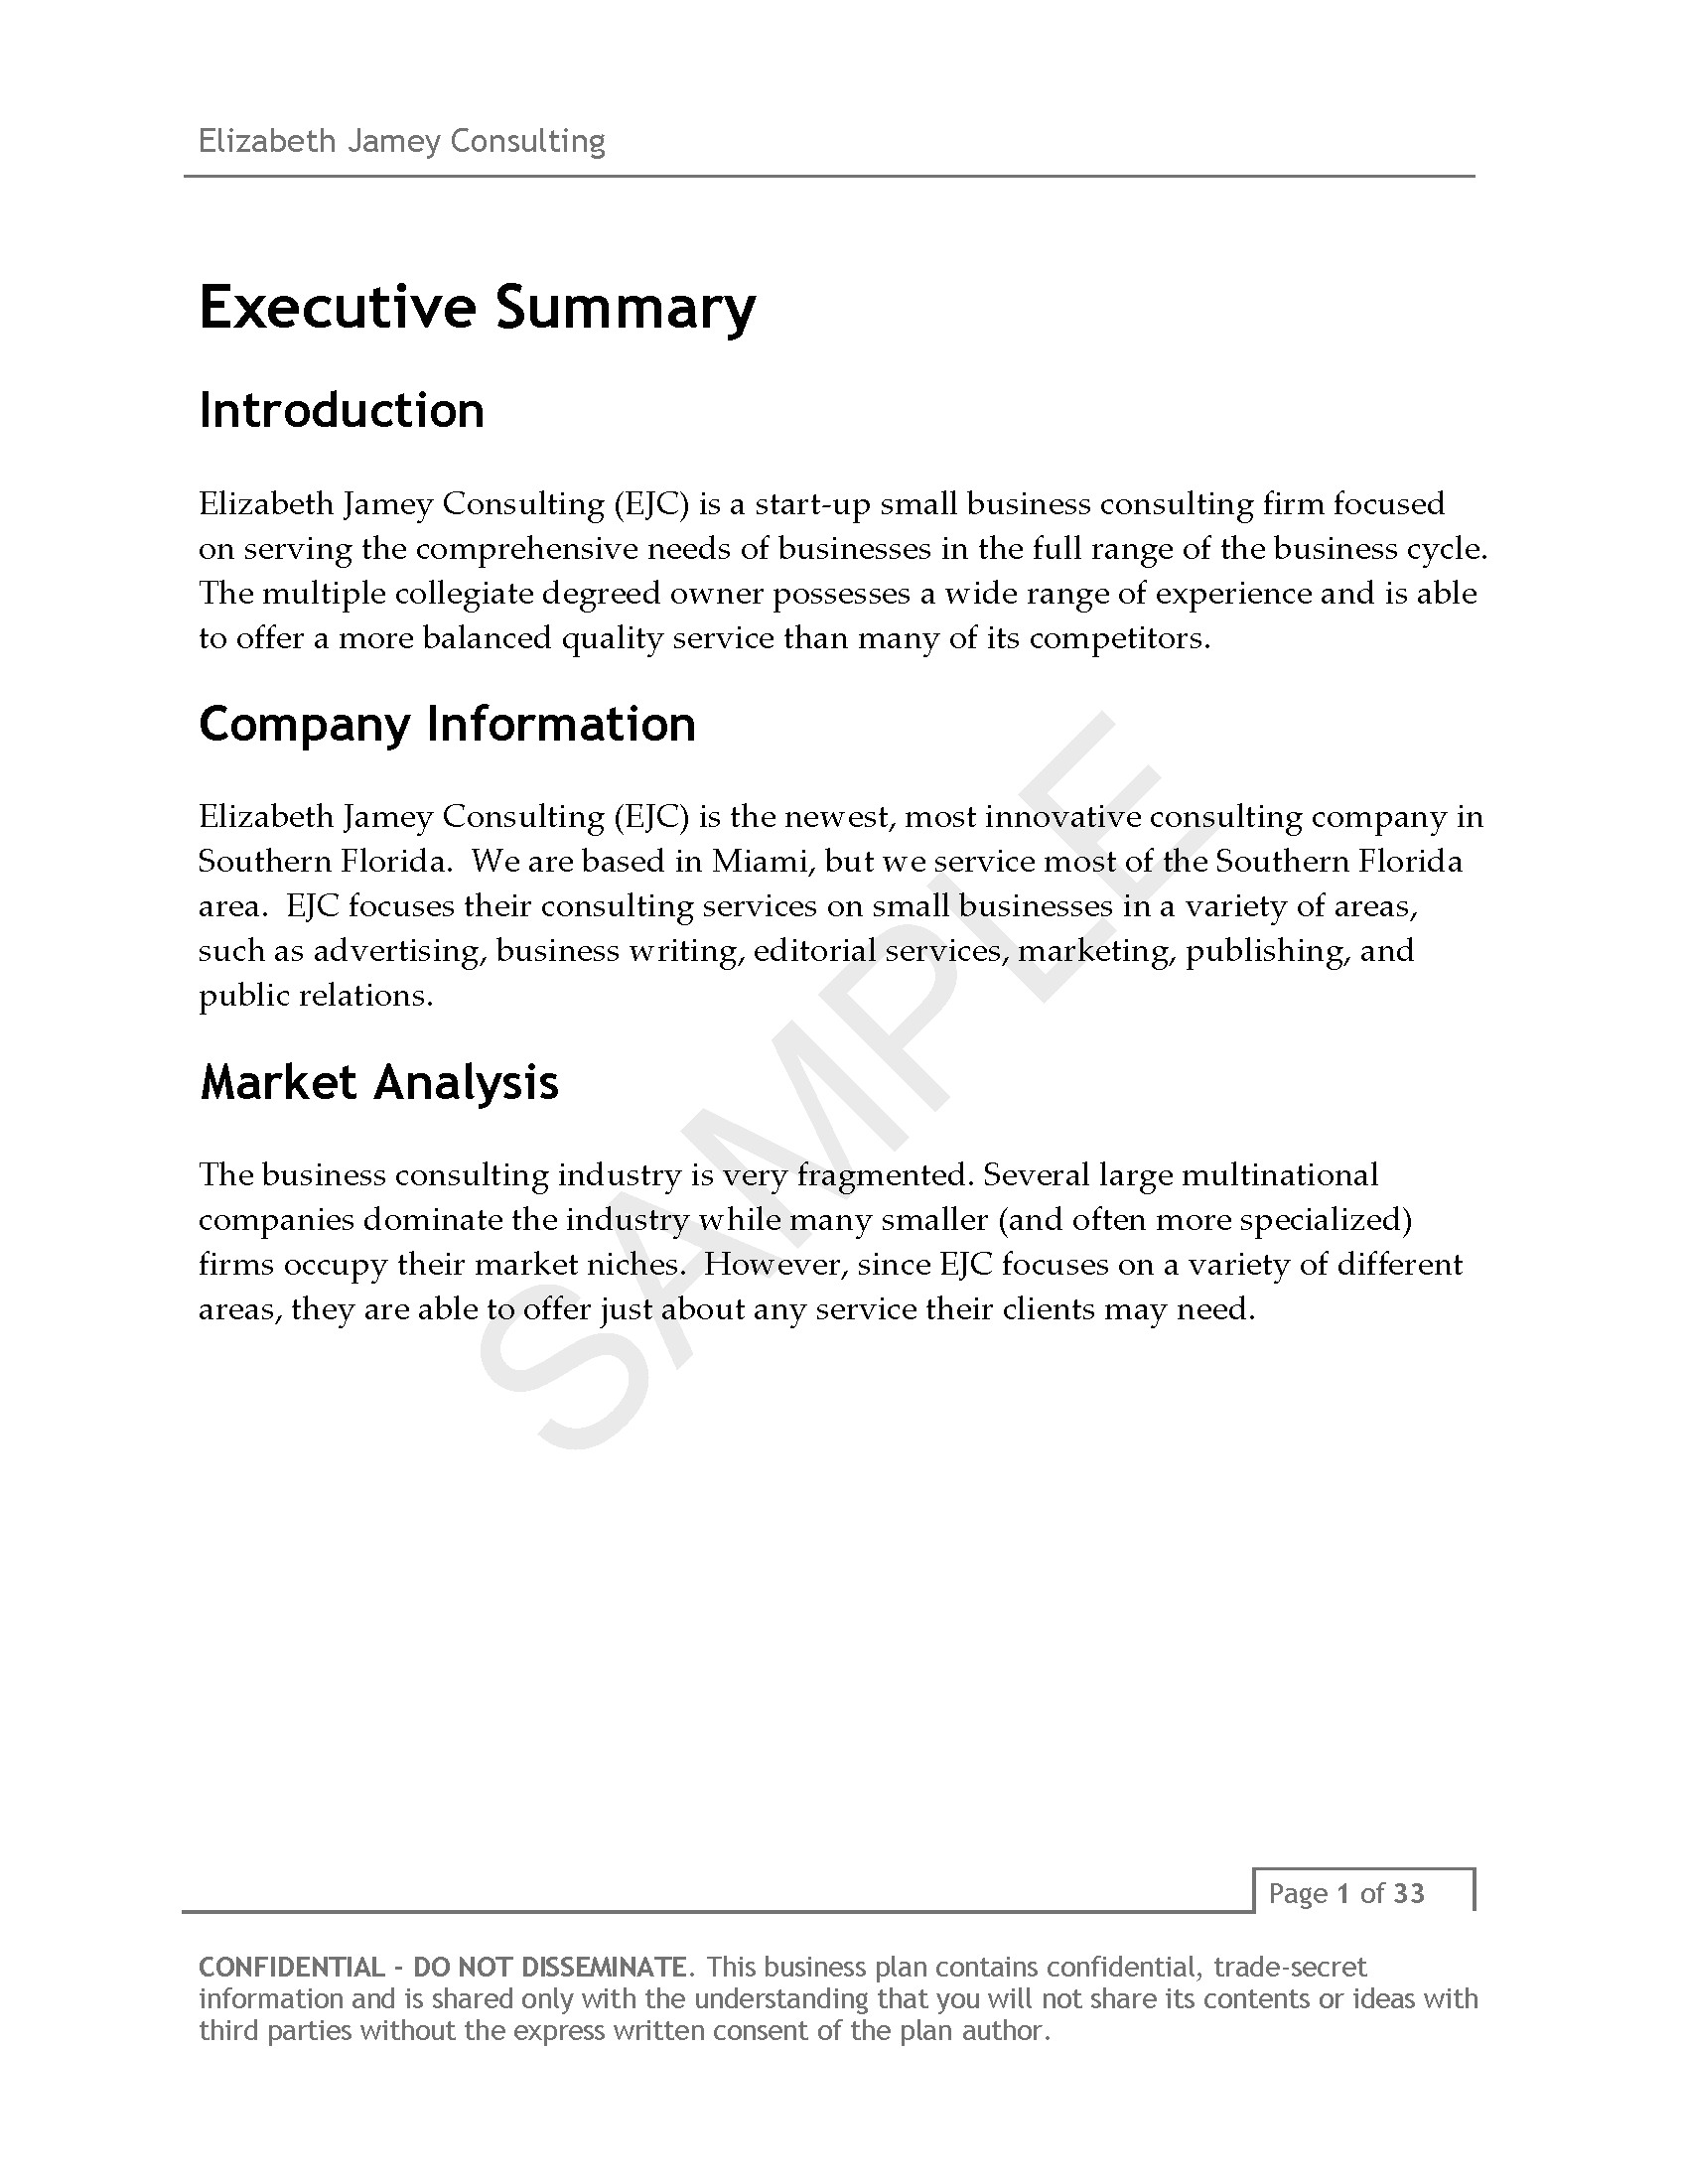 Business Plan Template for Consulting Firm Elizabeth Jamey Consulting Business Plan V3 Page 04 Ej